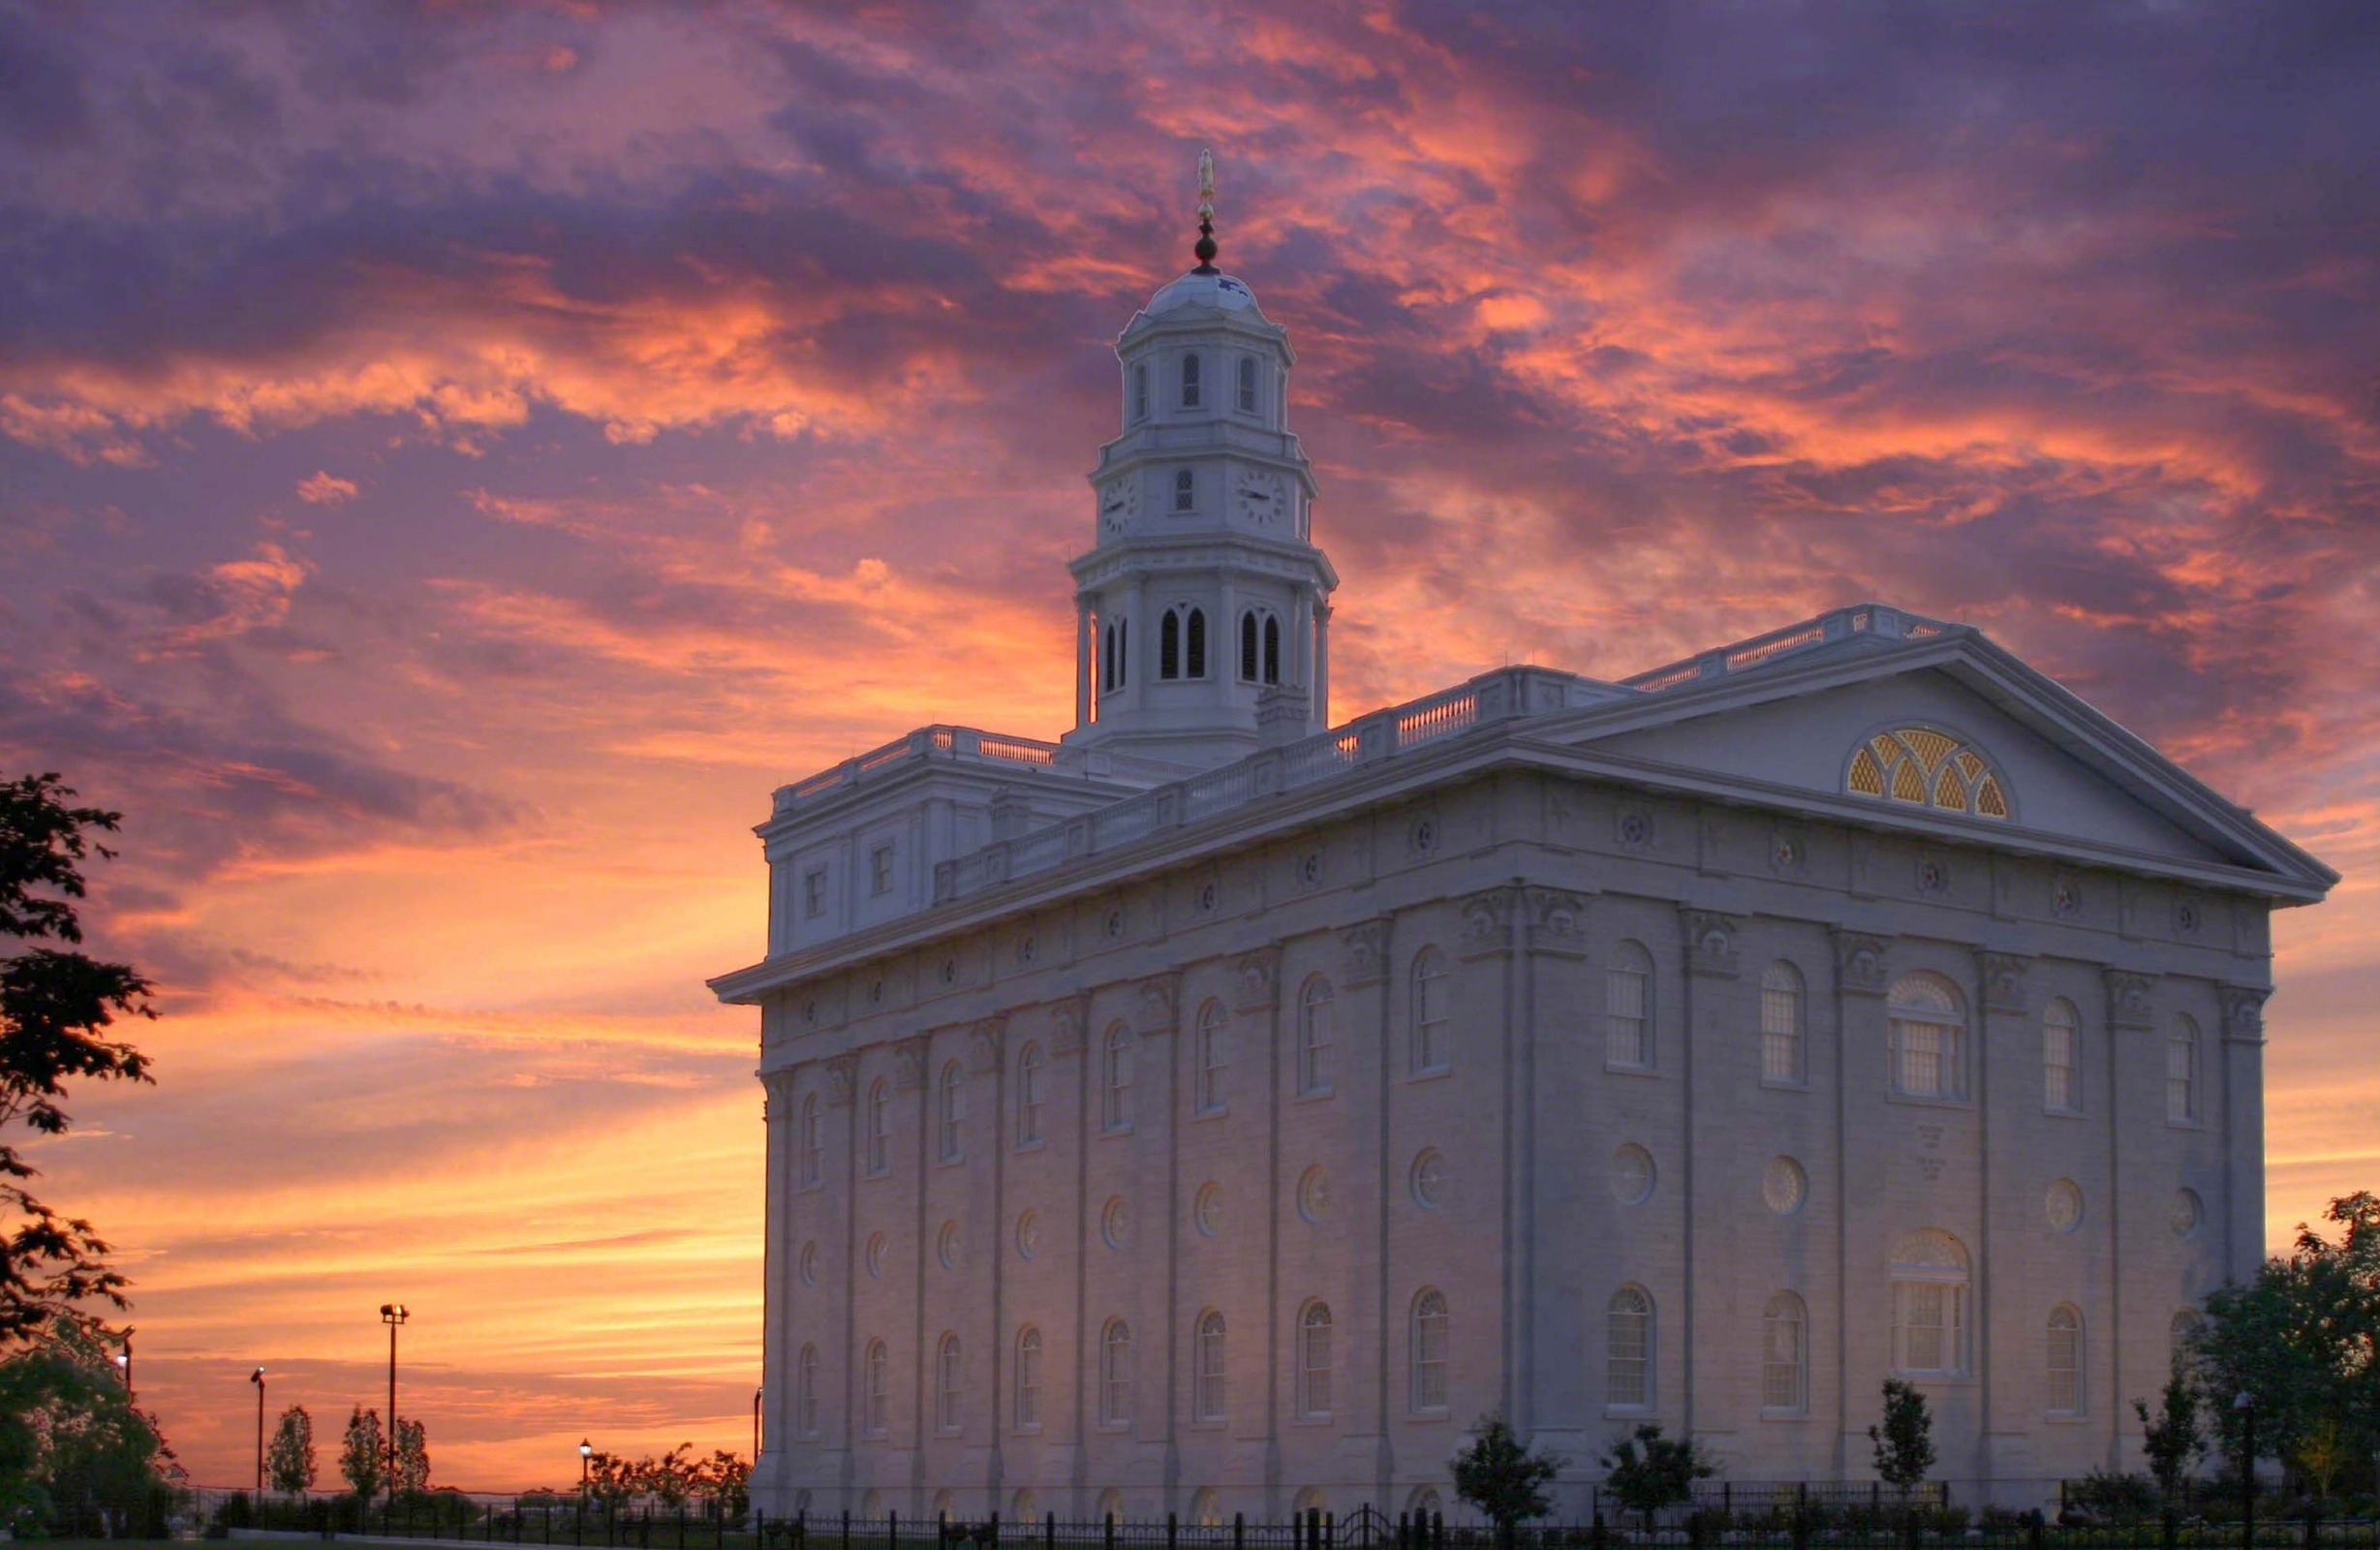 Nauvoo illinois temple at sunset - Lds temple wallpaper ...